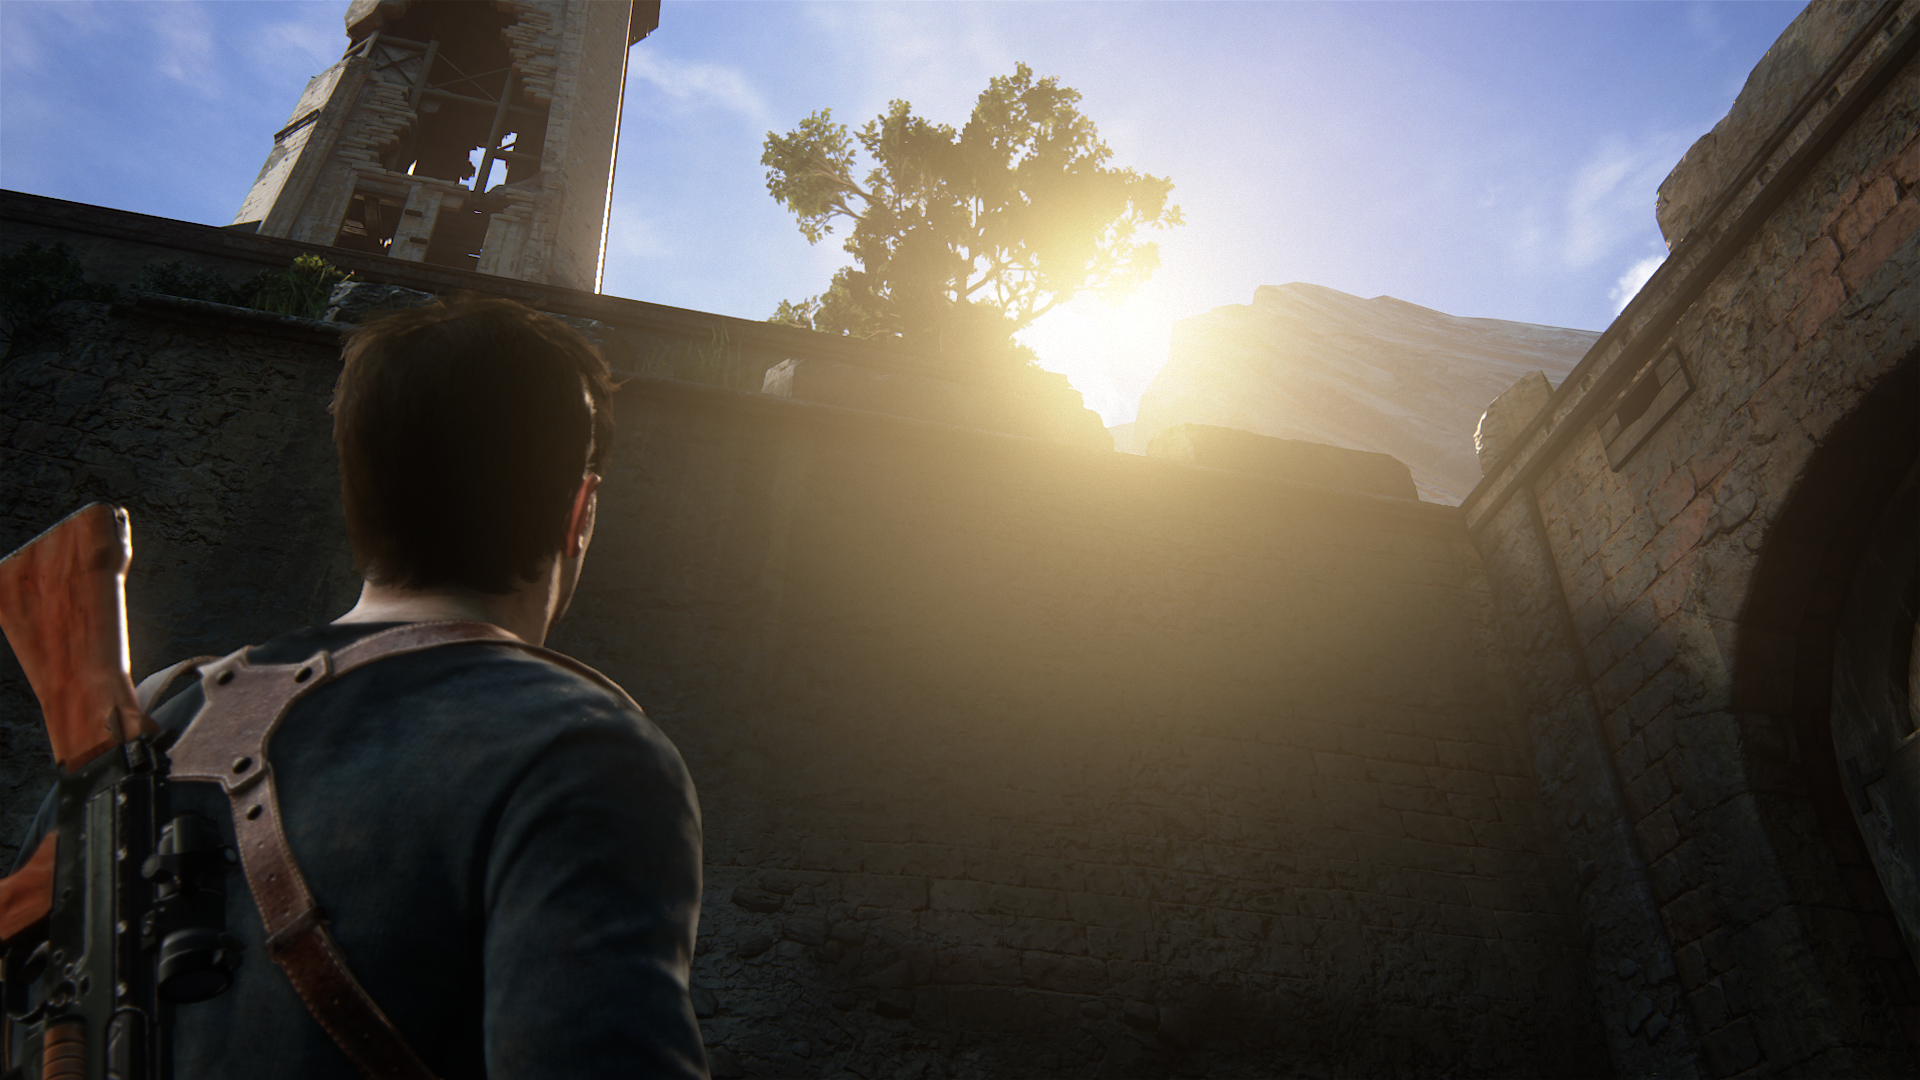 uncharted4_eldesenlac0llp6.png